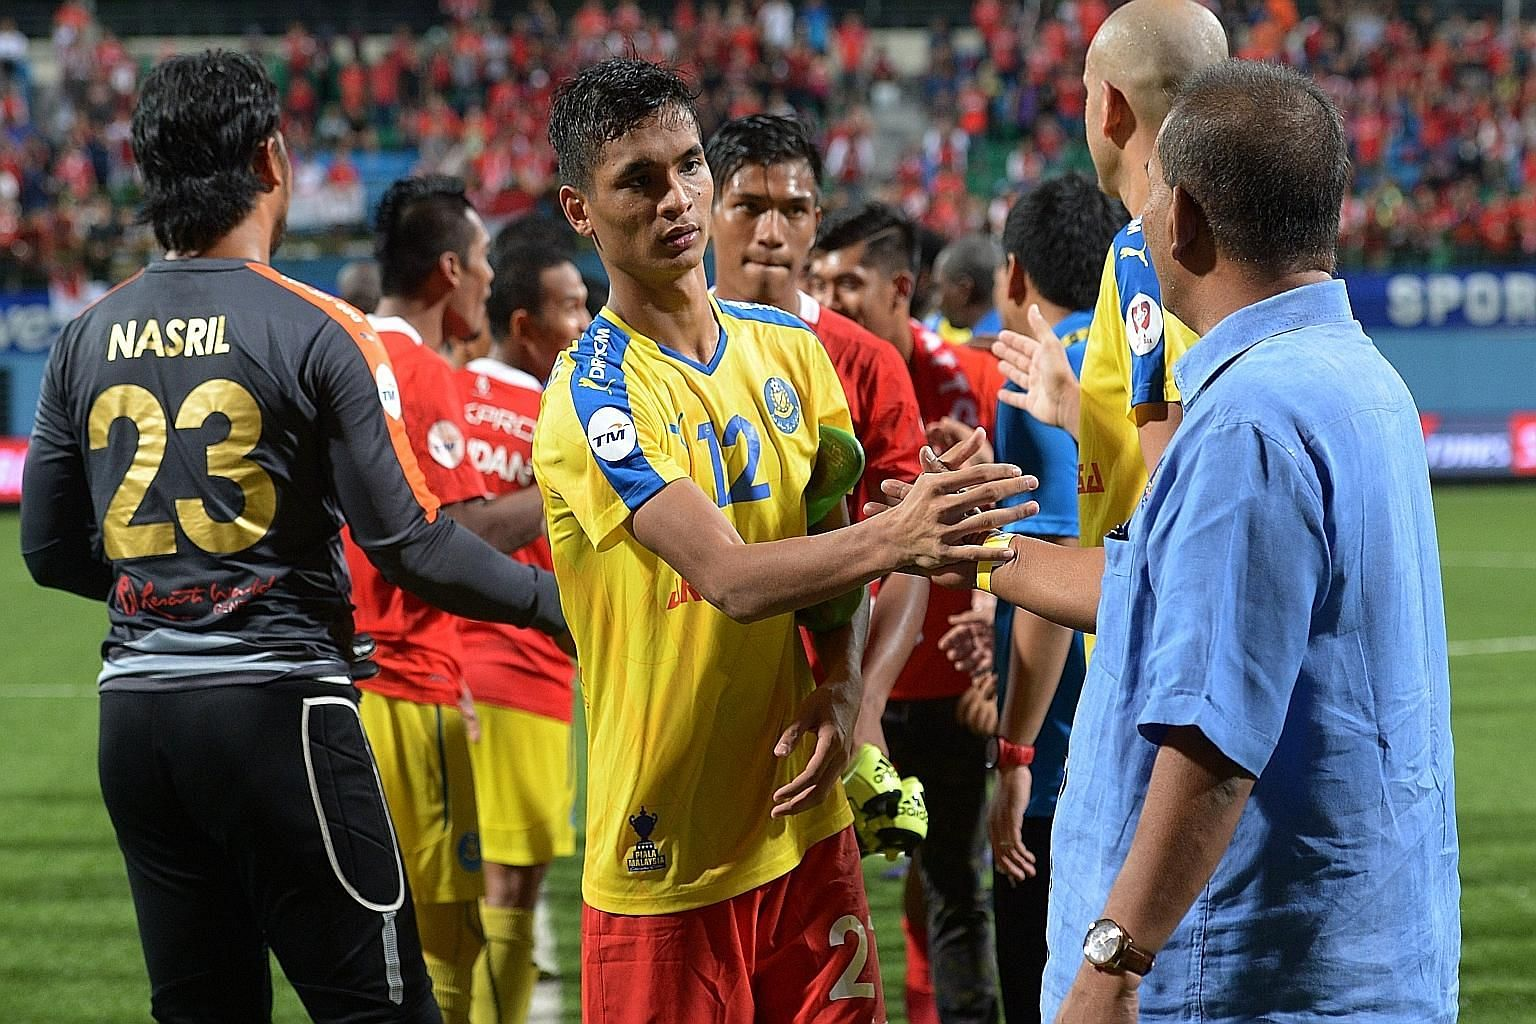 Safuwan Baharudin shaking the hands of Pahang players and officials, who gave a guard of honour to the LionsXII squad and coaching staff after the final whistle.